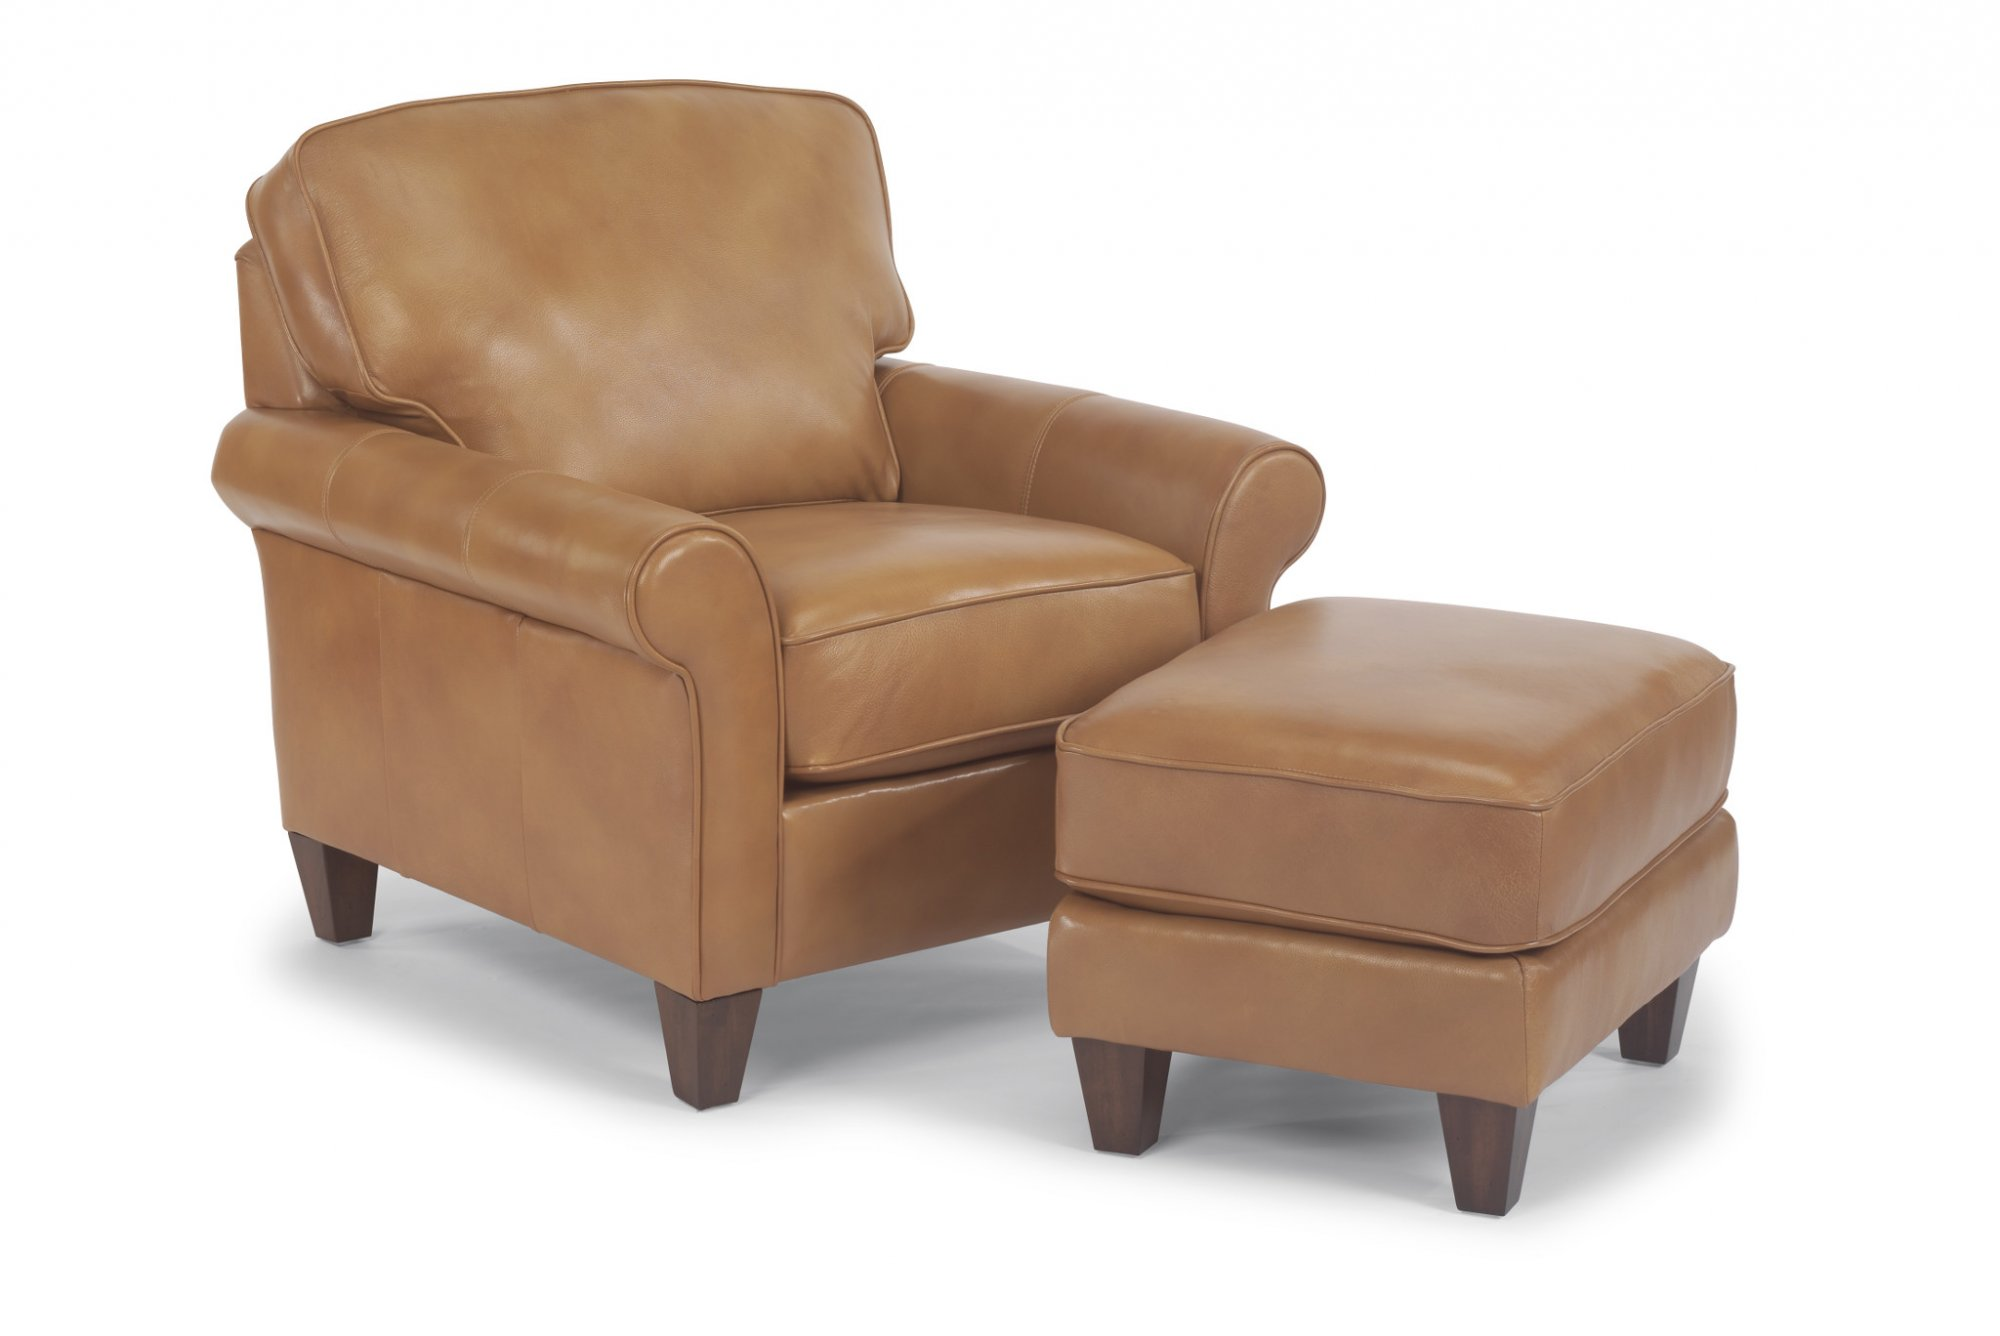 Cool Flexsteel 3979 Sect Westside Leather Sectional Craig Unemploymentrelief Wooden Chair Designs For Living Room Unemploymentrelieforg